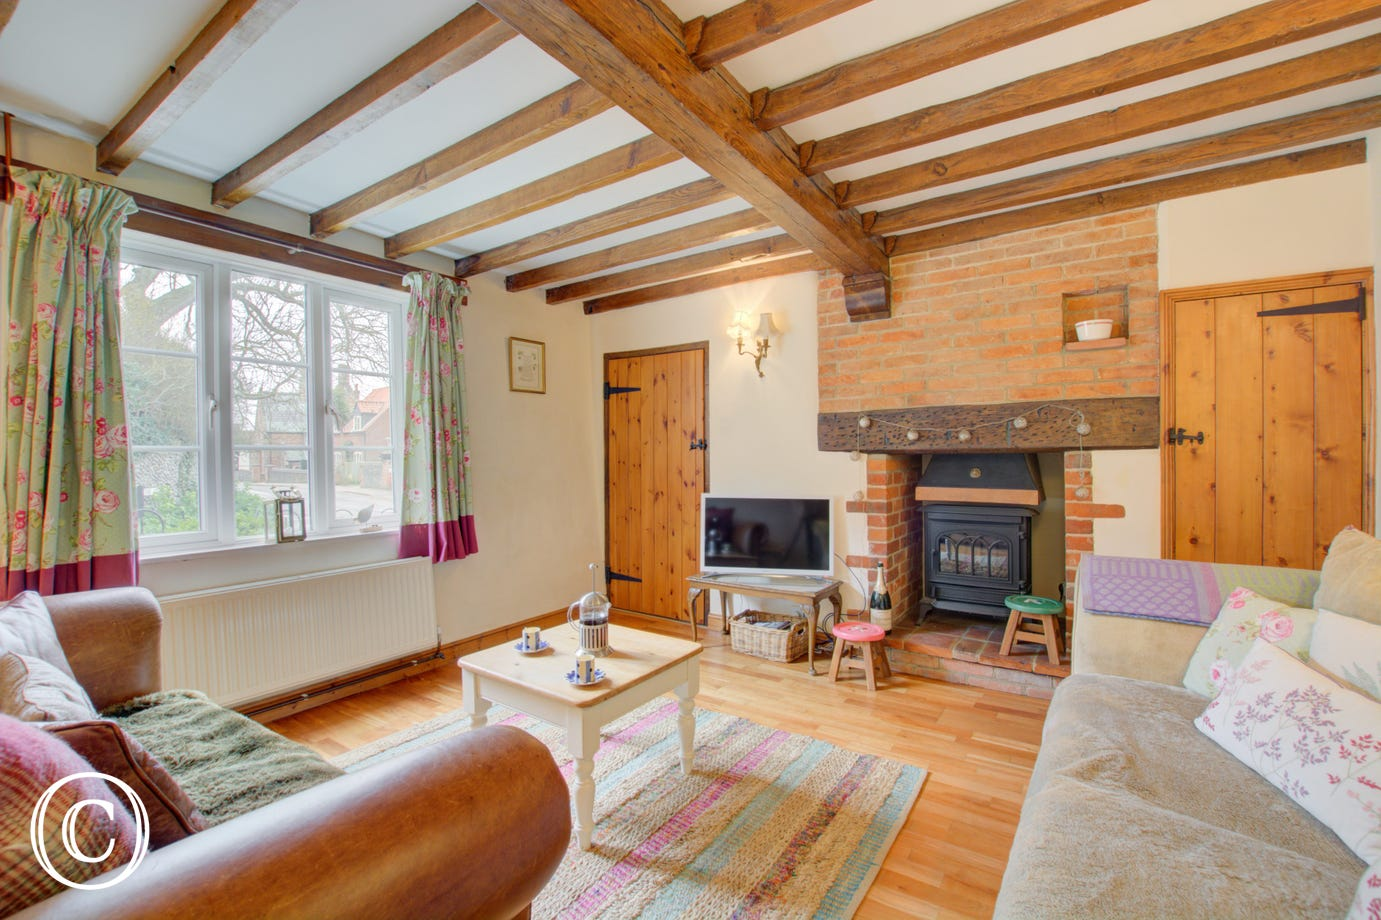 The sitting room is a lovely cosy space with rustic open beams and an electric woodburner